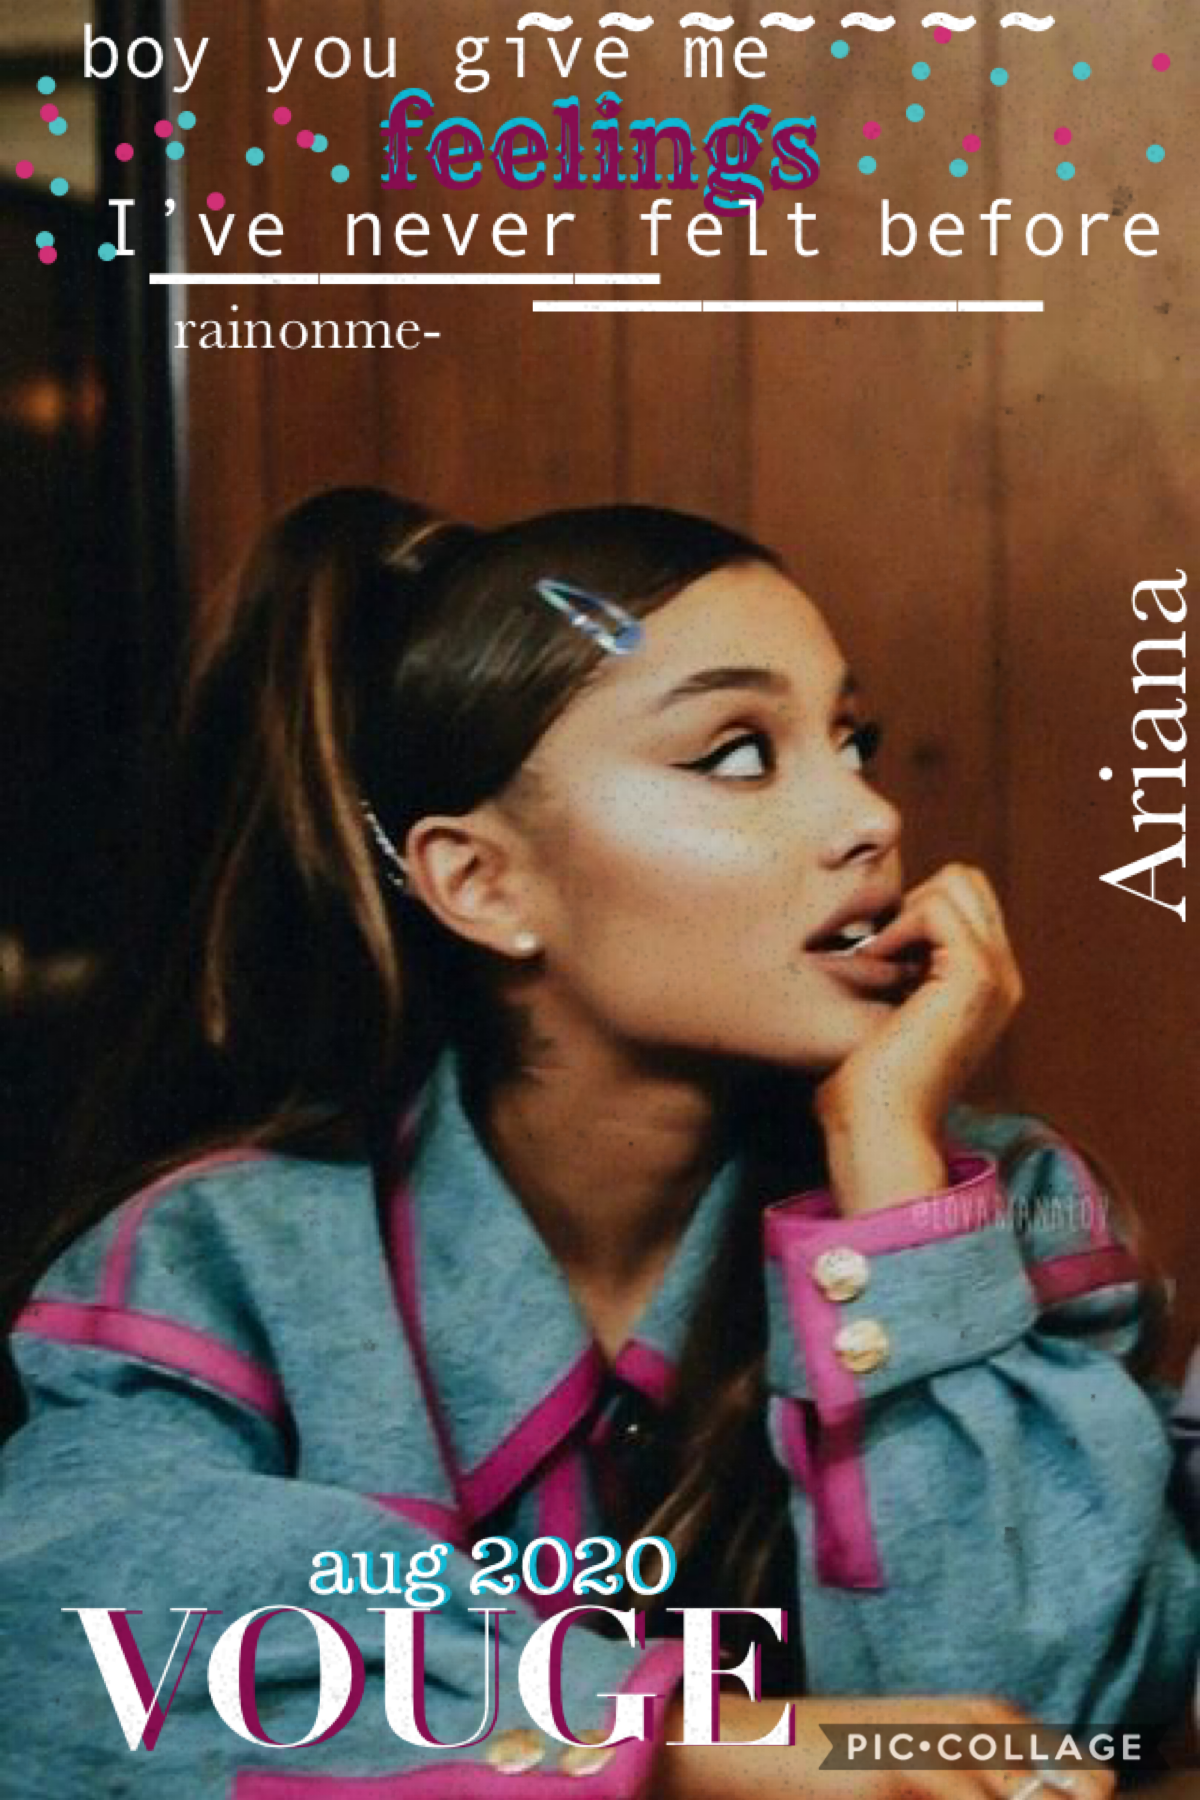 ⚡️new theme⚡️ ALL CREDIT FOR THIS THEME goes to @ArtAddiction she has an amazing post similar to this I'm going to be posting a few like this 💛